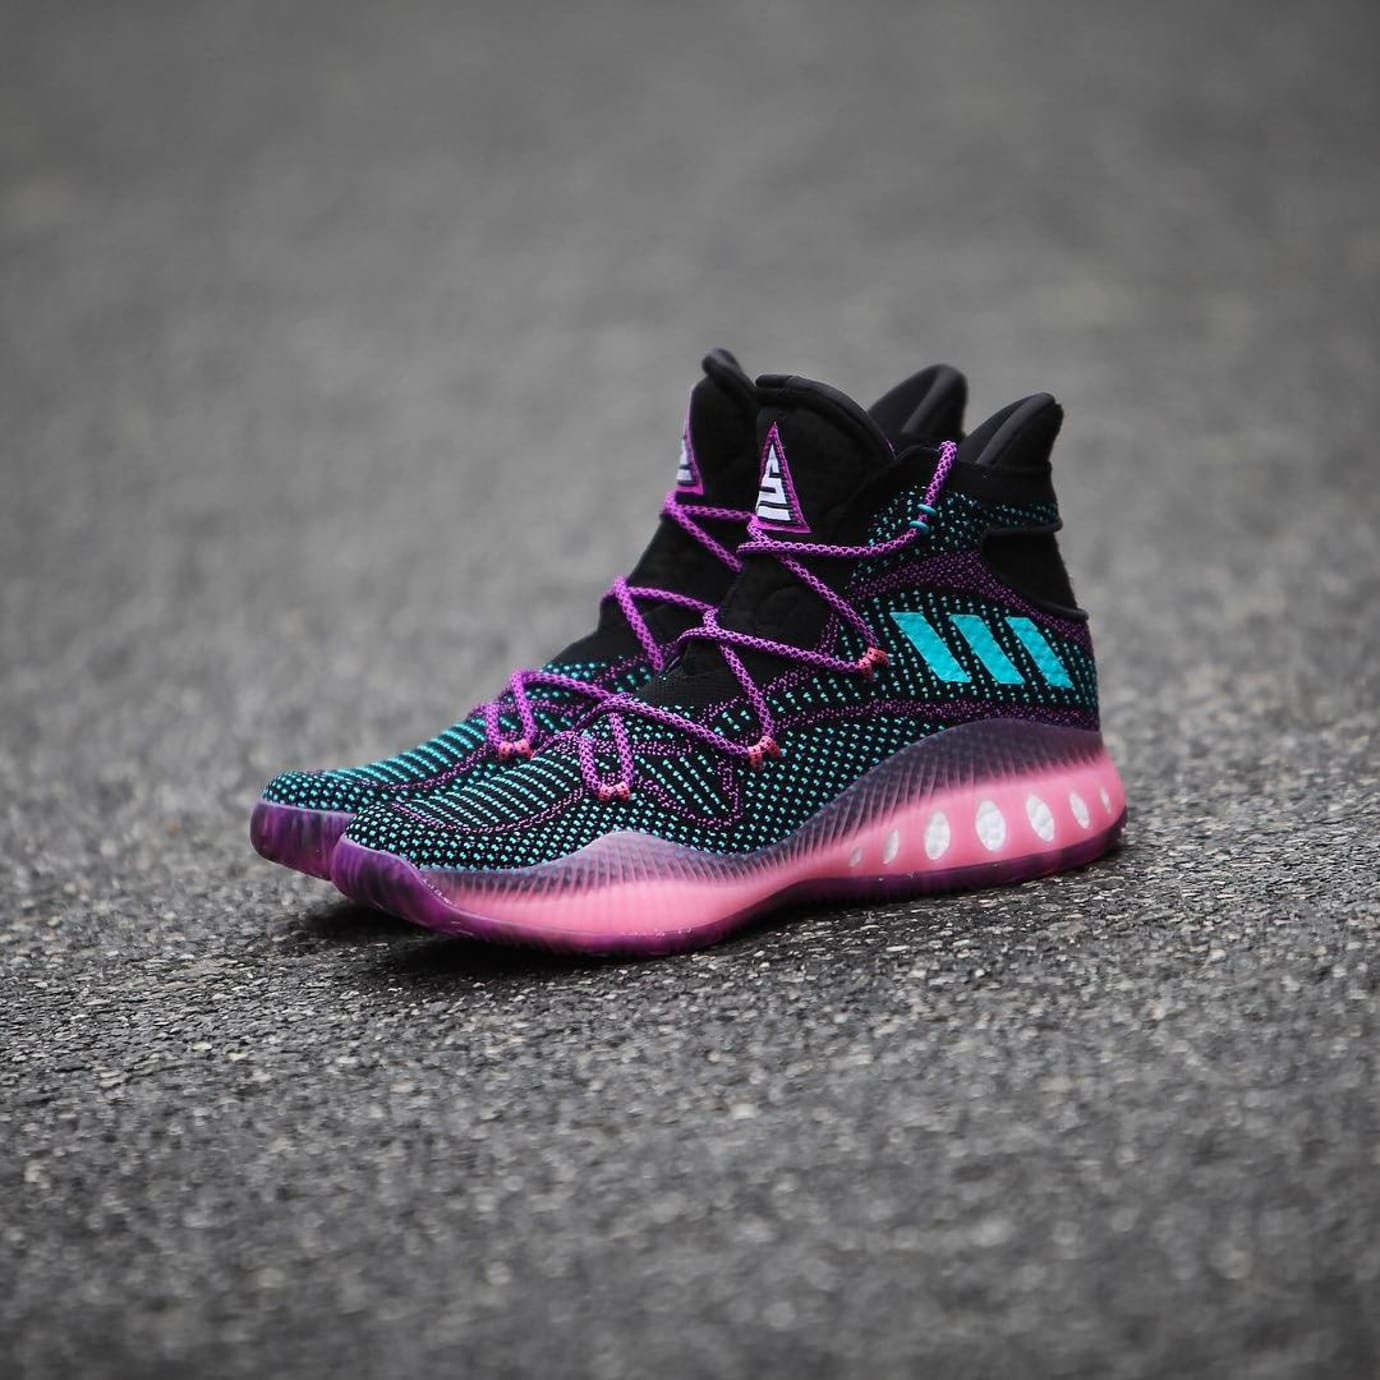 hot sale online 9239e 99dd1 Swaggy P Adidas Crazy Explosive Black Pink PE (2)